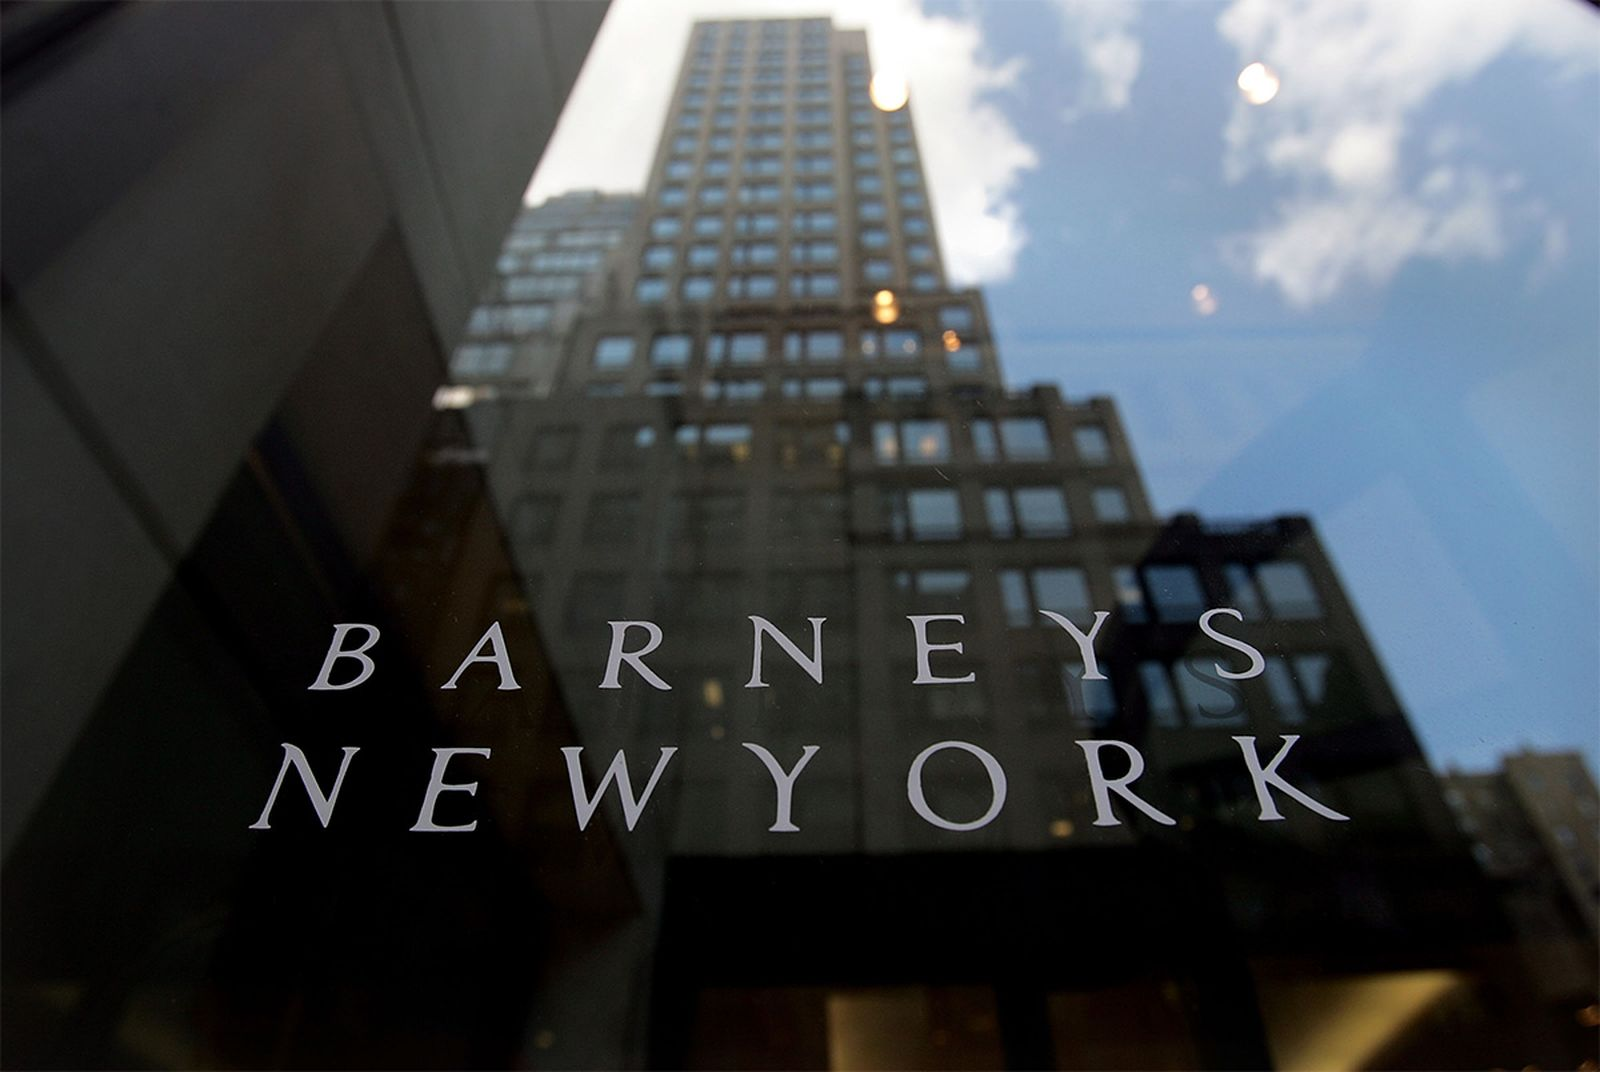 barneys nyc bankrupt A$AP Rocky Apple Card Chance the Rapper